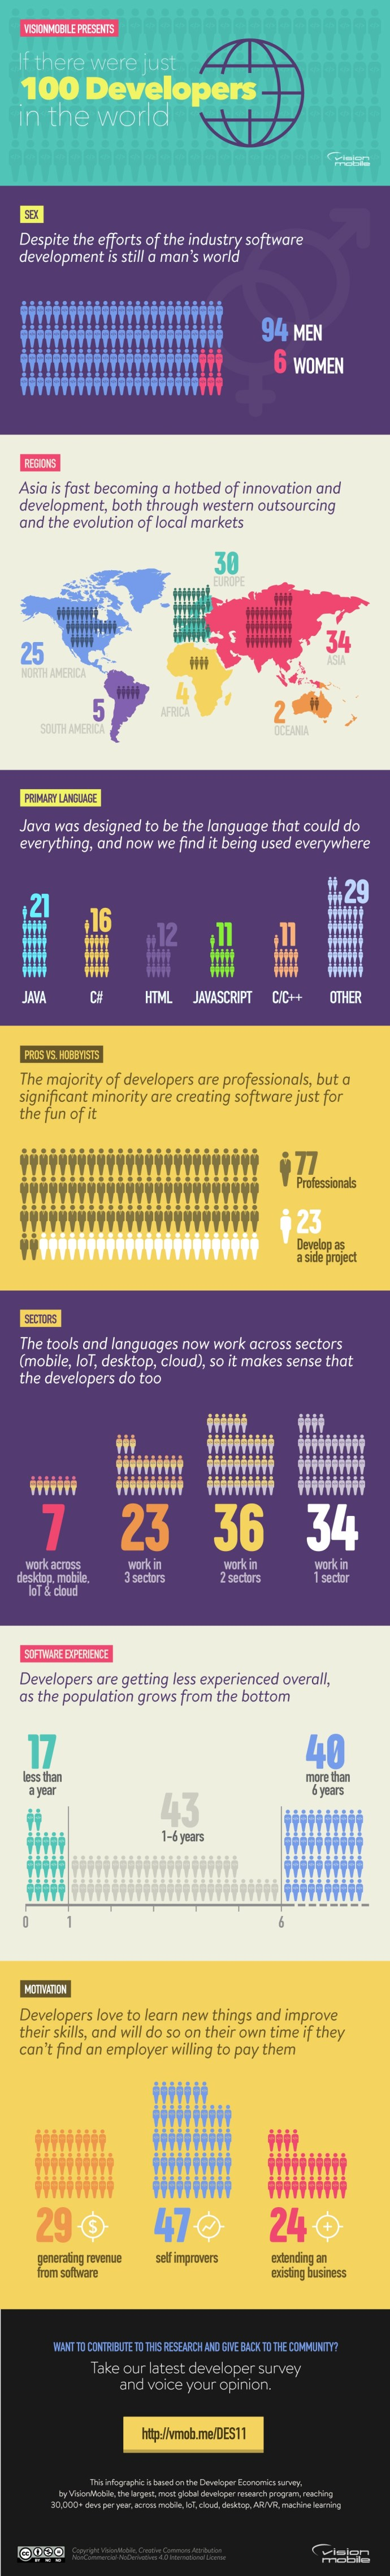 100-developers-infographic-visionmobile.jpg